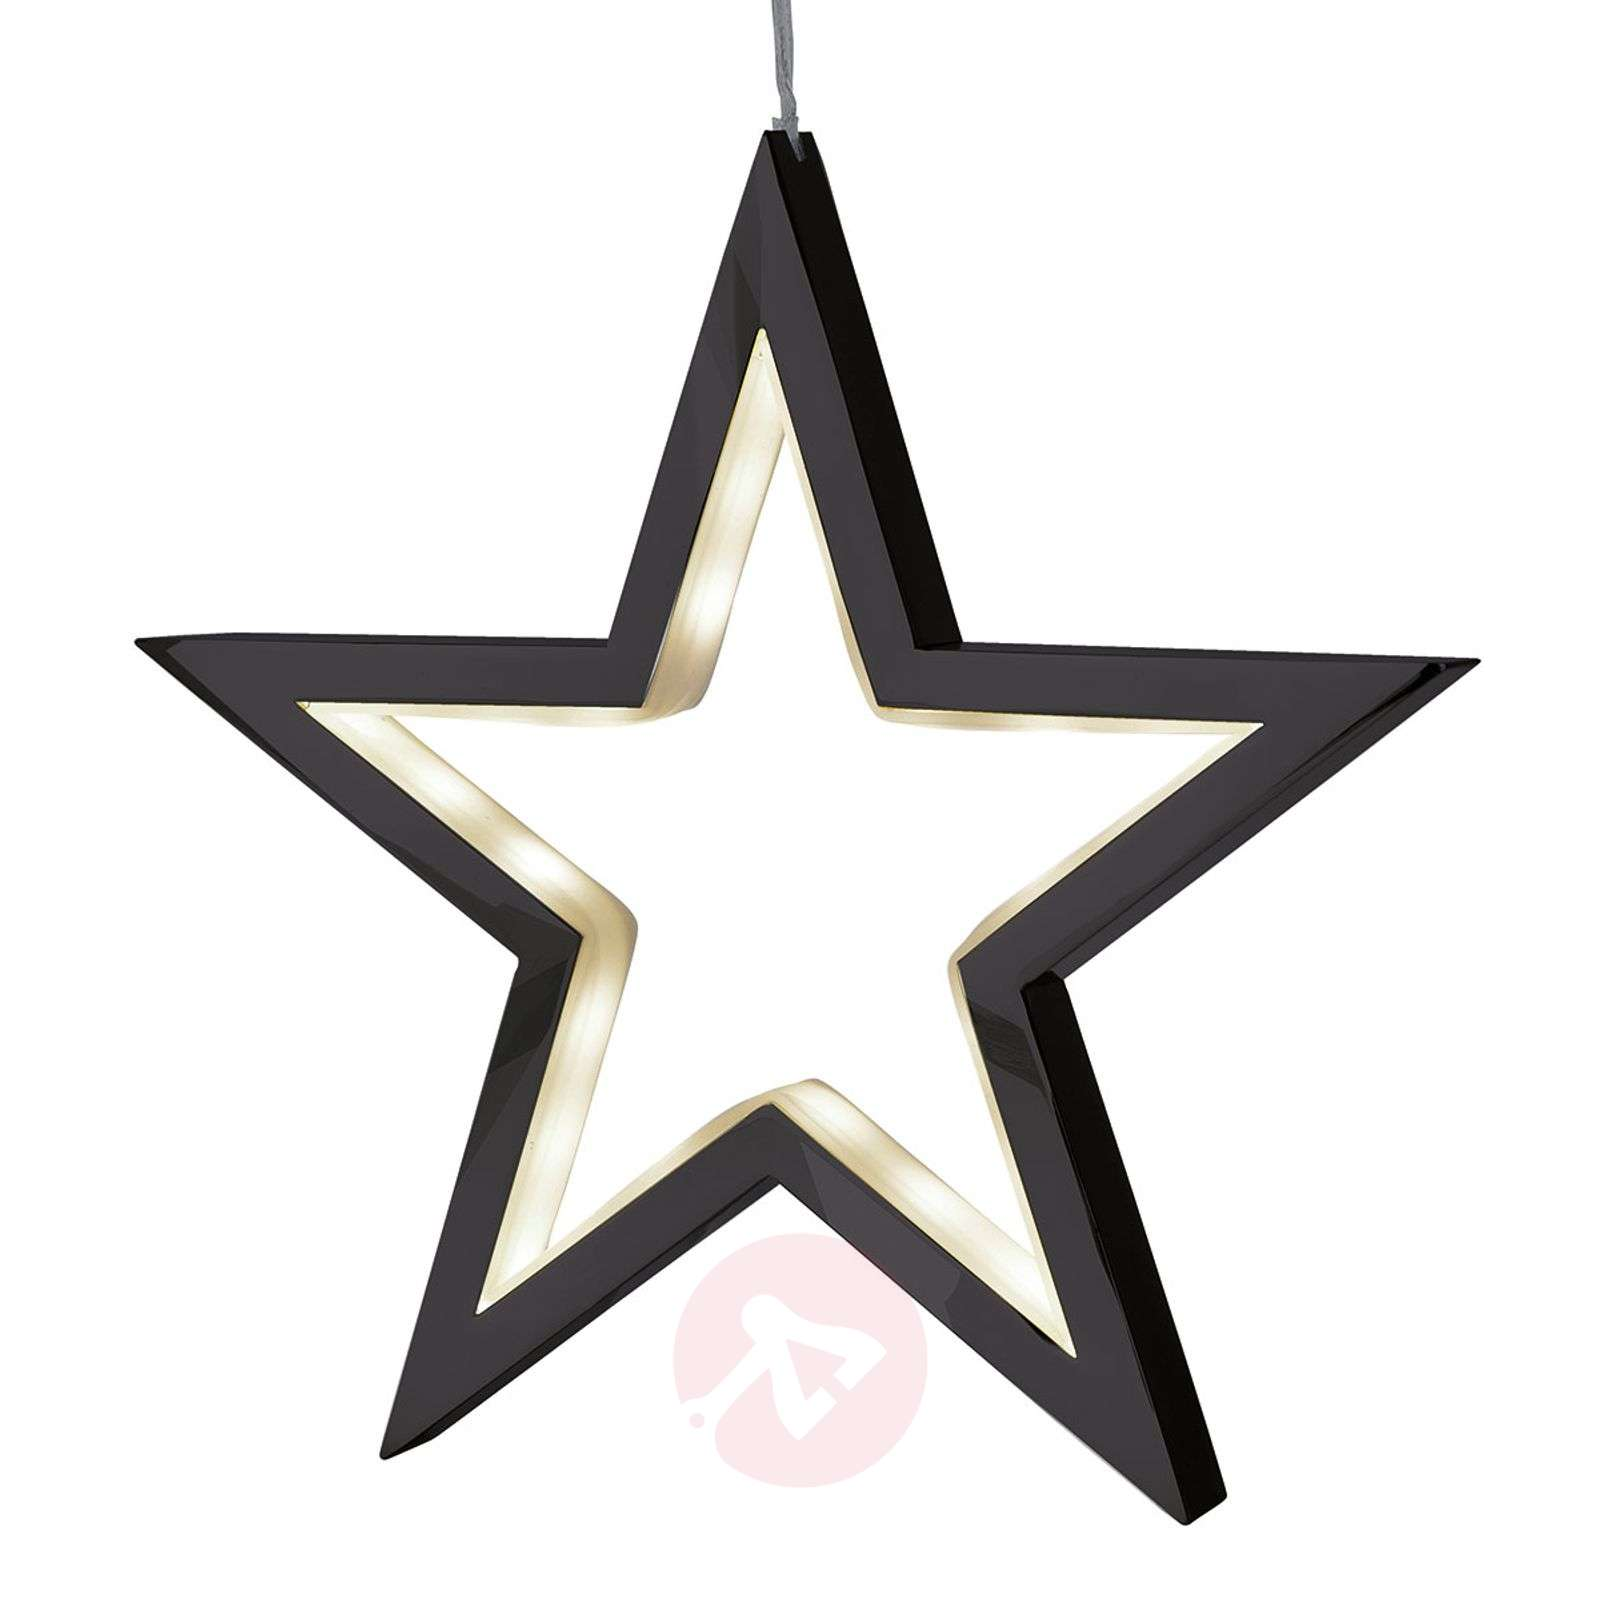 For hanging decorative star Lucy-8507665X-01